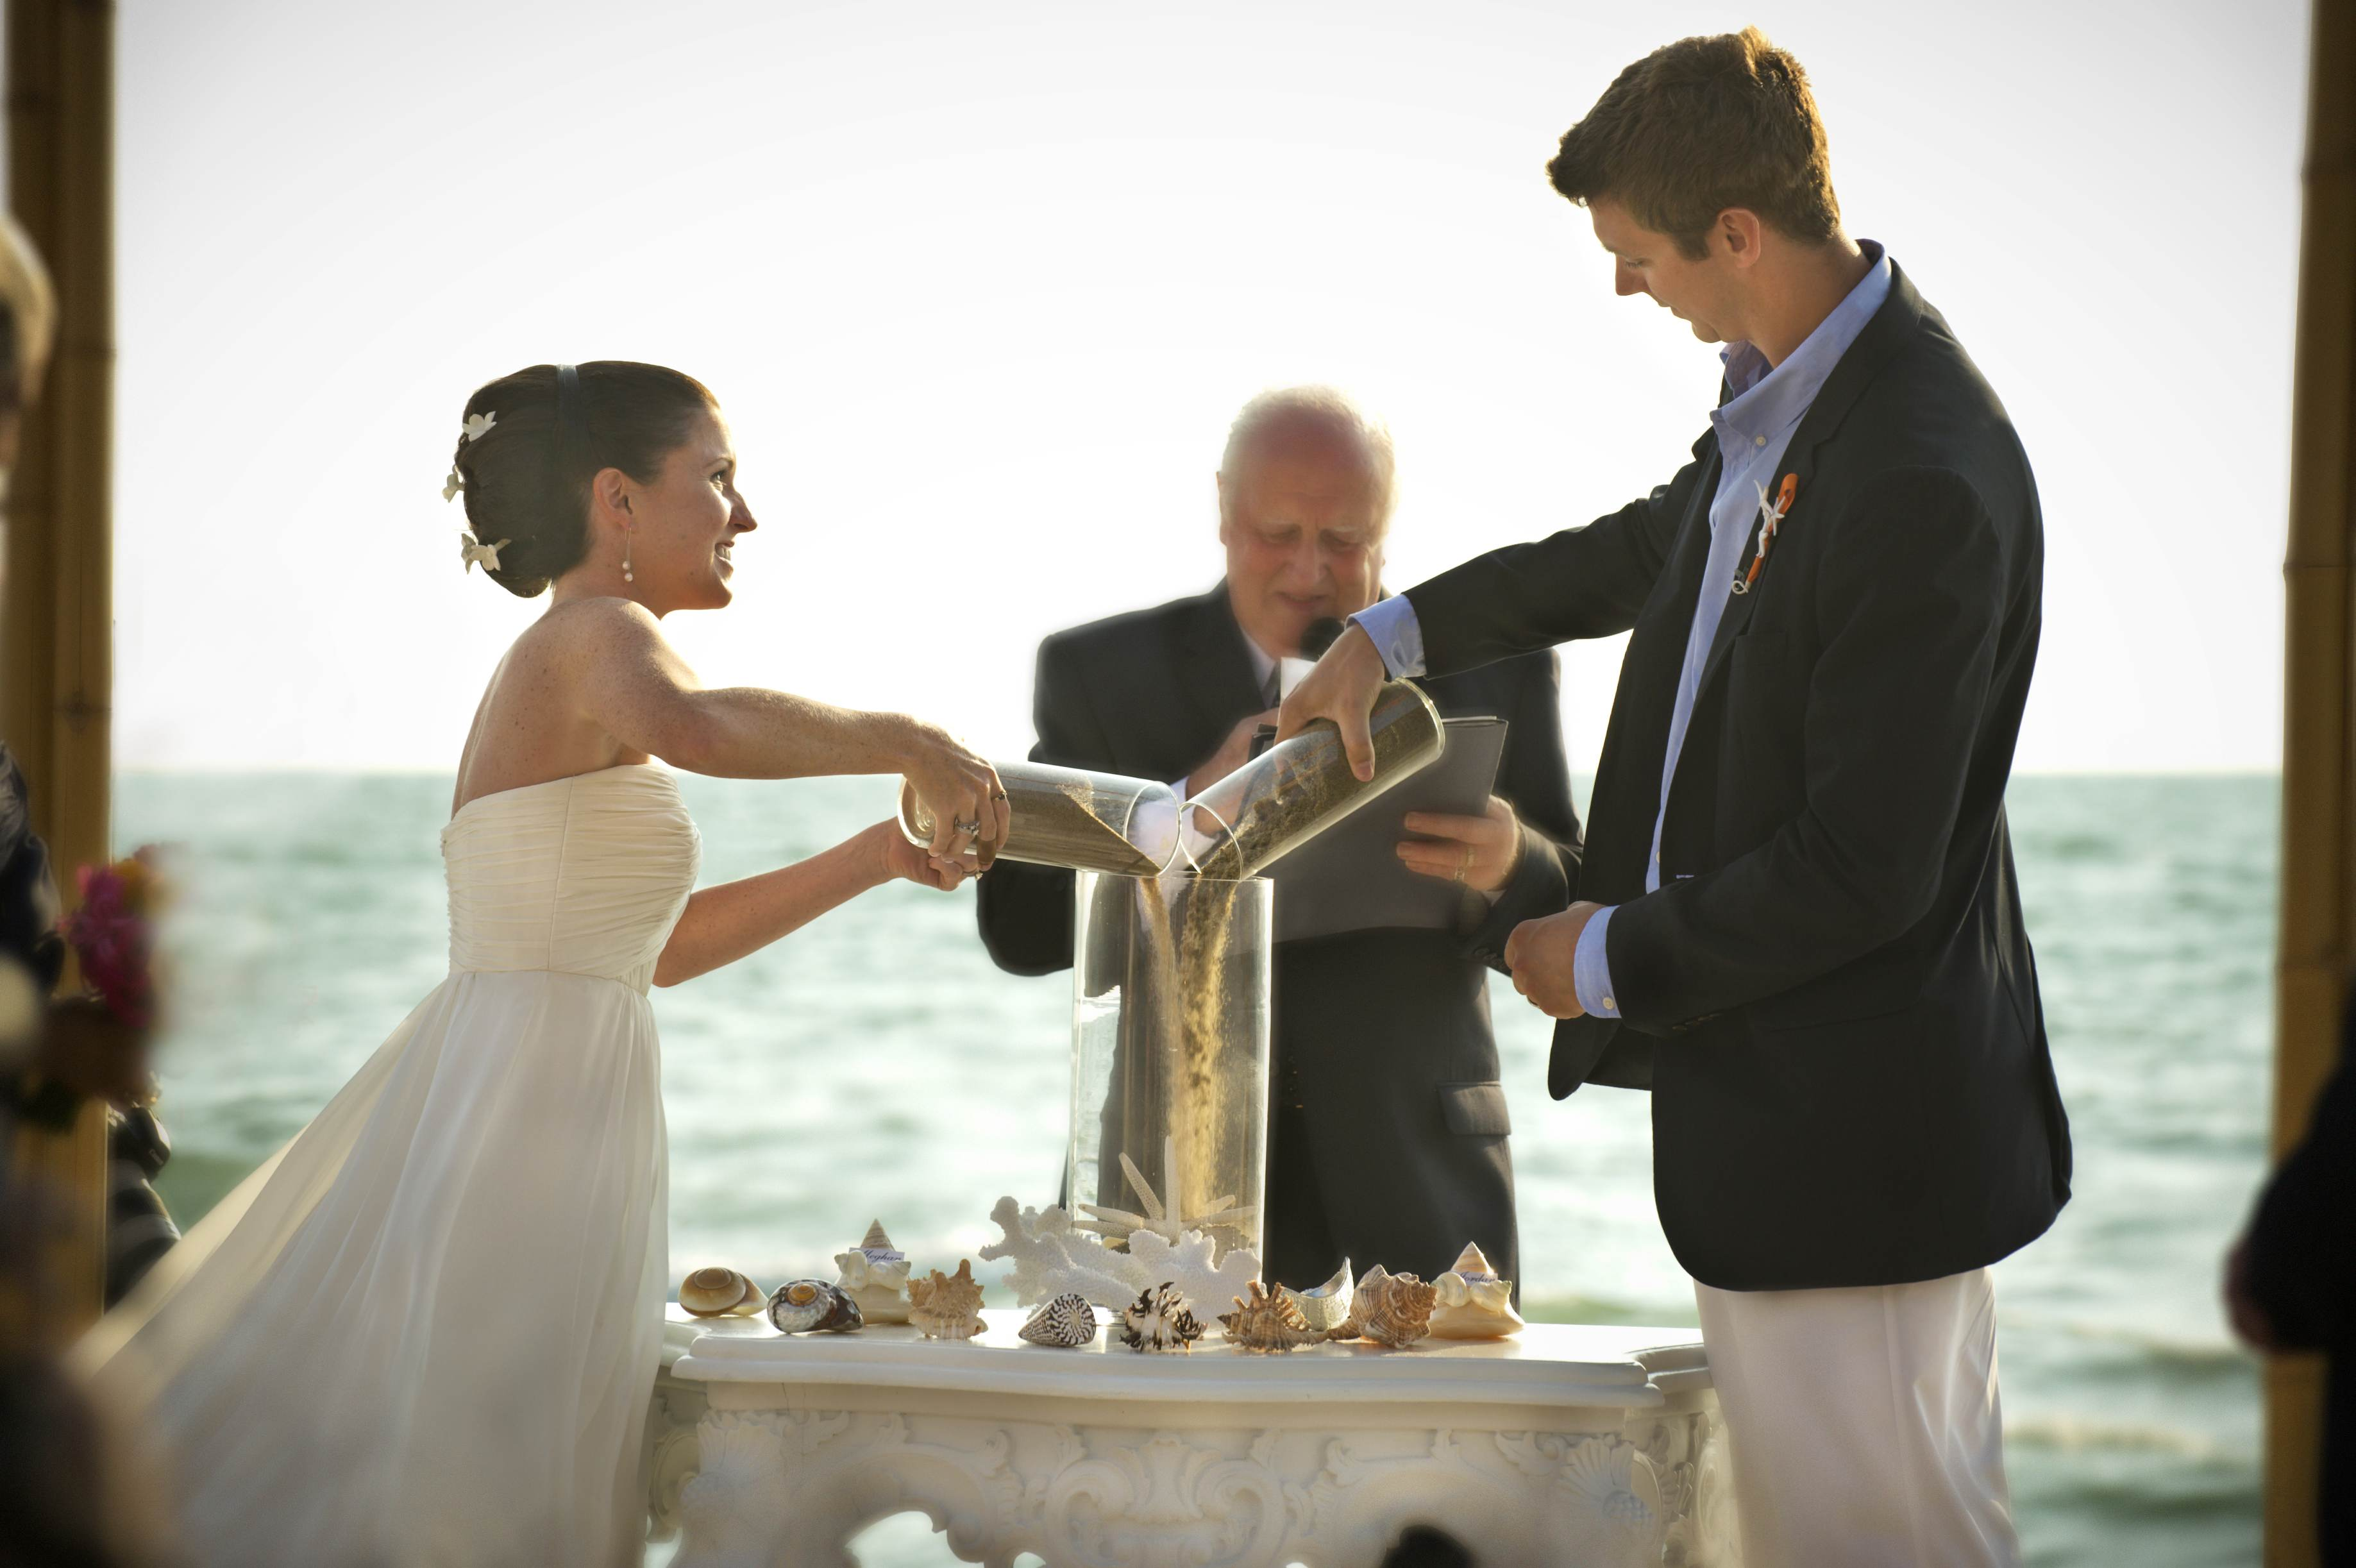 Wedding Ceremony Ideas: Unity Ceremonies for Nuptials - Inside Weddings